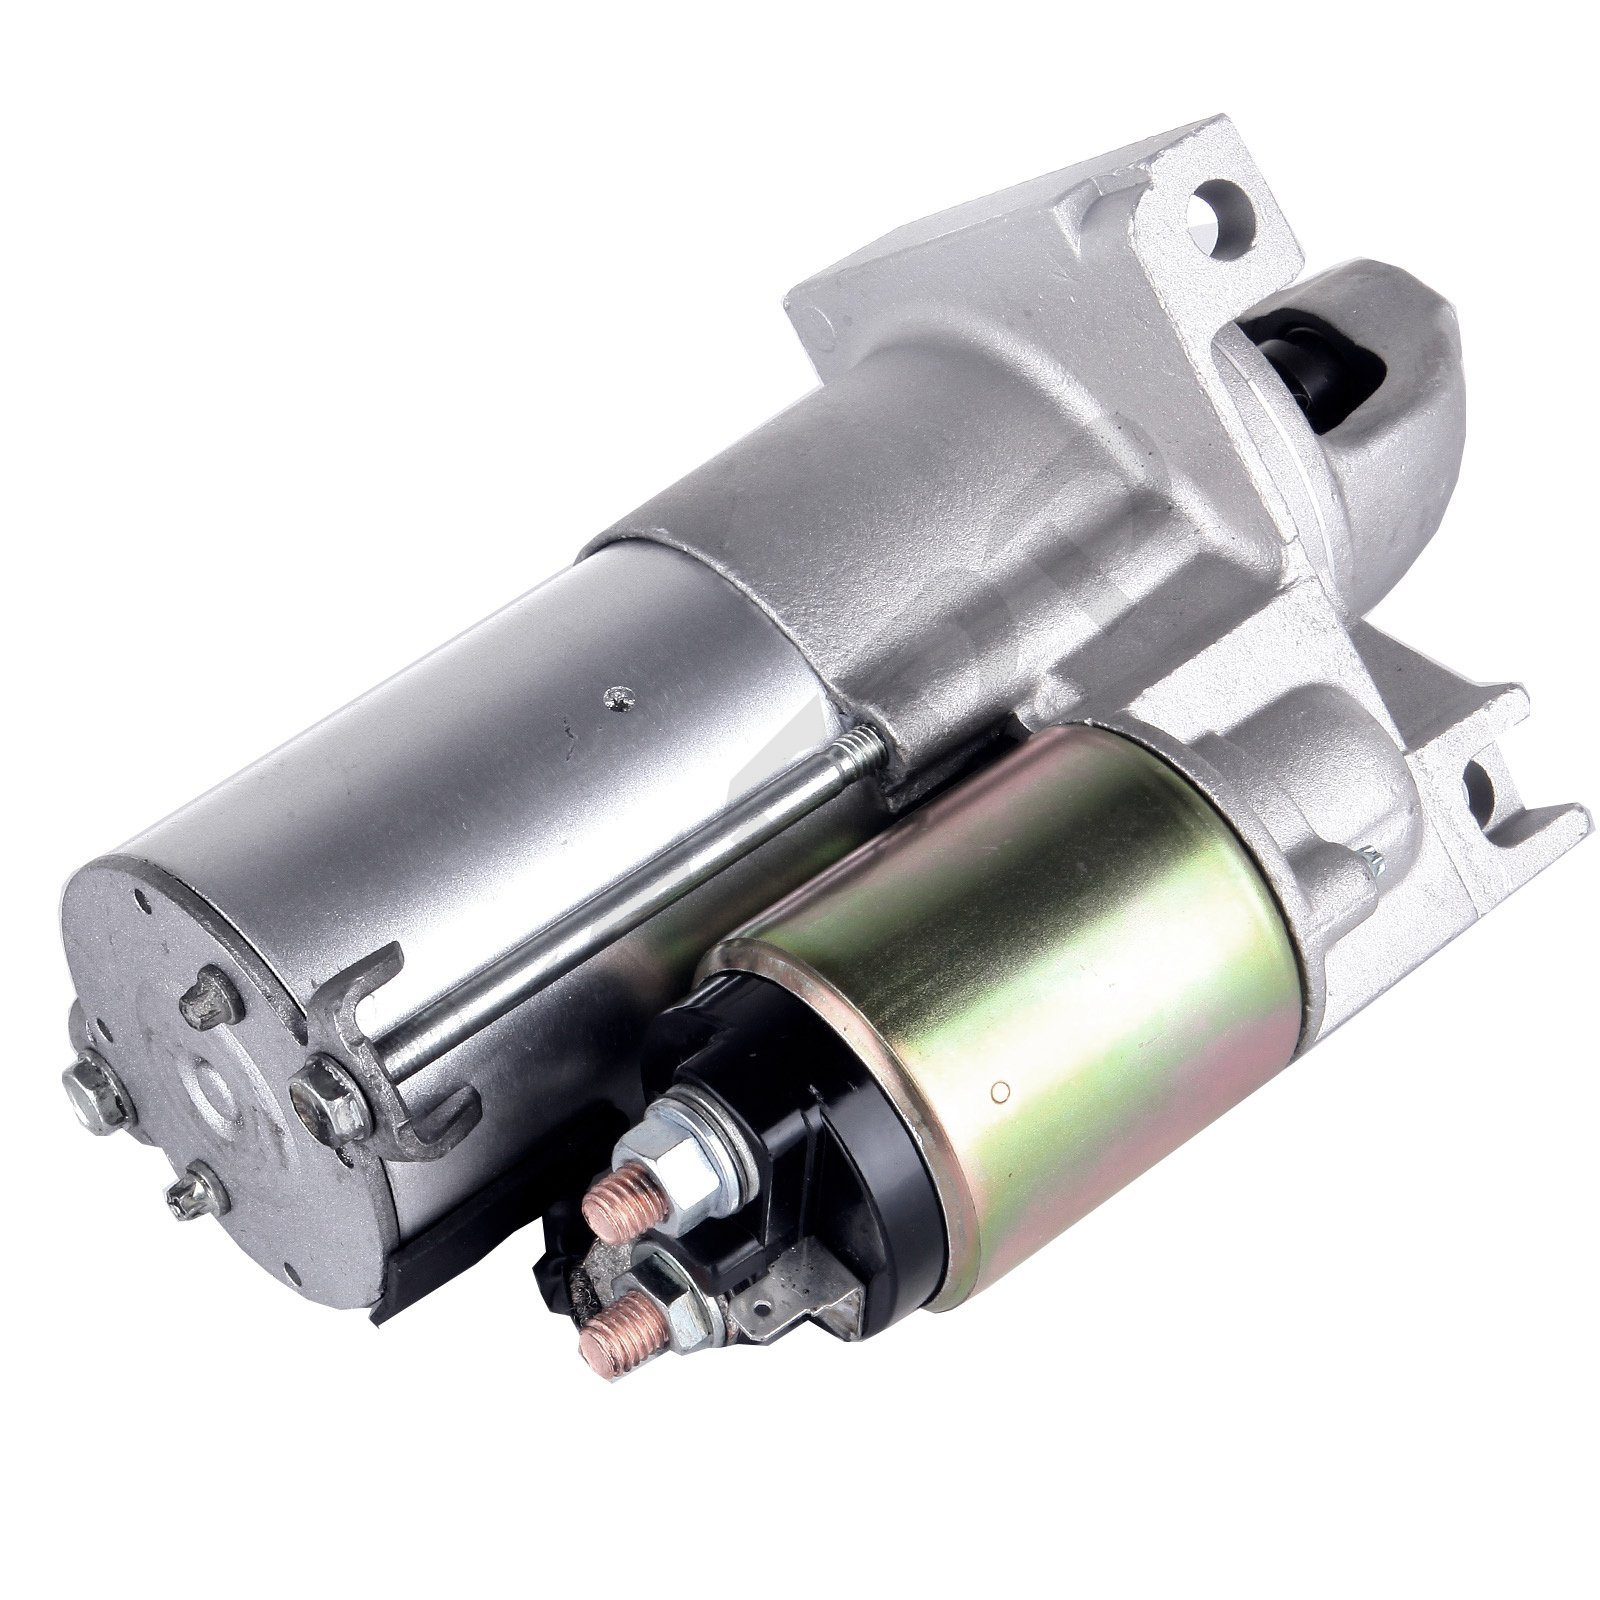 ECCPP New Starter Motor For Chevrolet S10 CAVALIER 2.2L 2002 2003 2004 IMPALA MONTE CARLO VENTURE 3.4L Buick CENTURY RENDEZVOUS Oldsmobile ALERO SILHOUETTE Pontiac AZTEK GRAND AM MONTANA by ECCPP